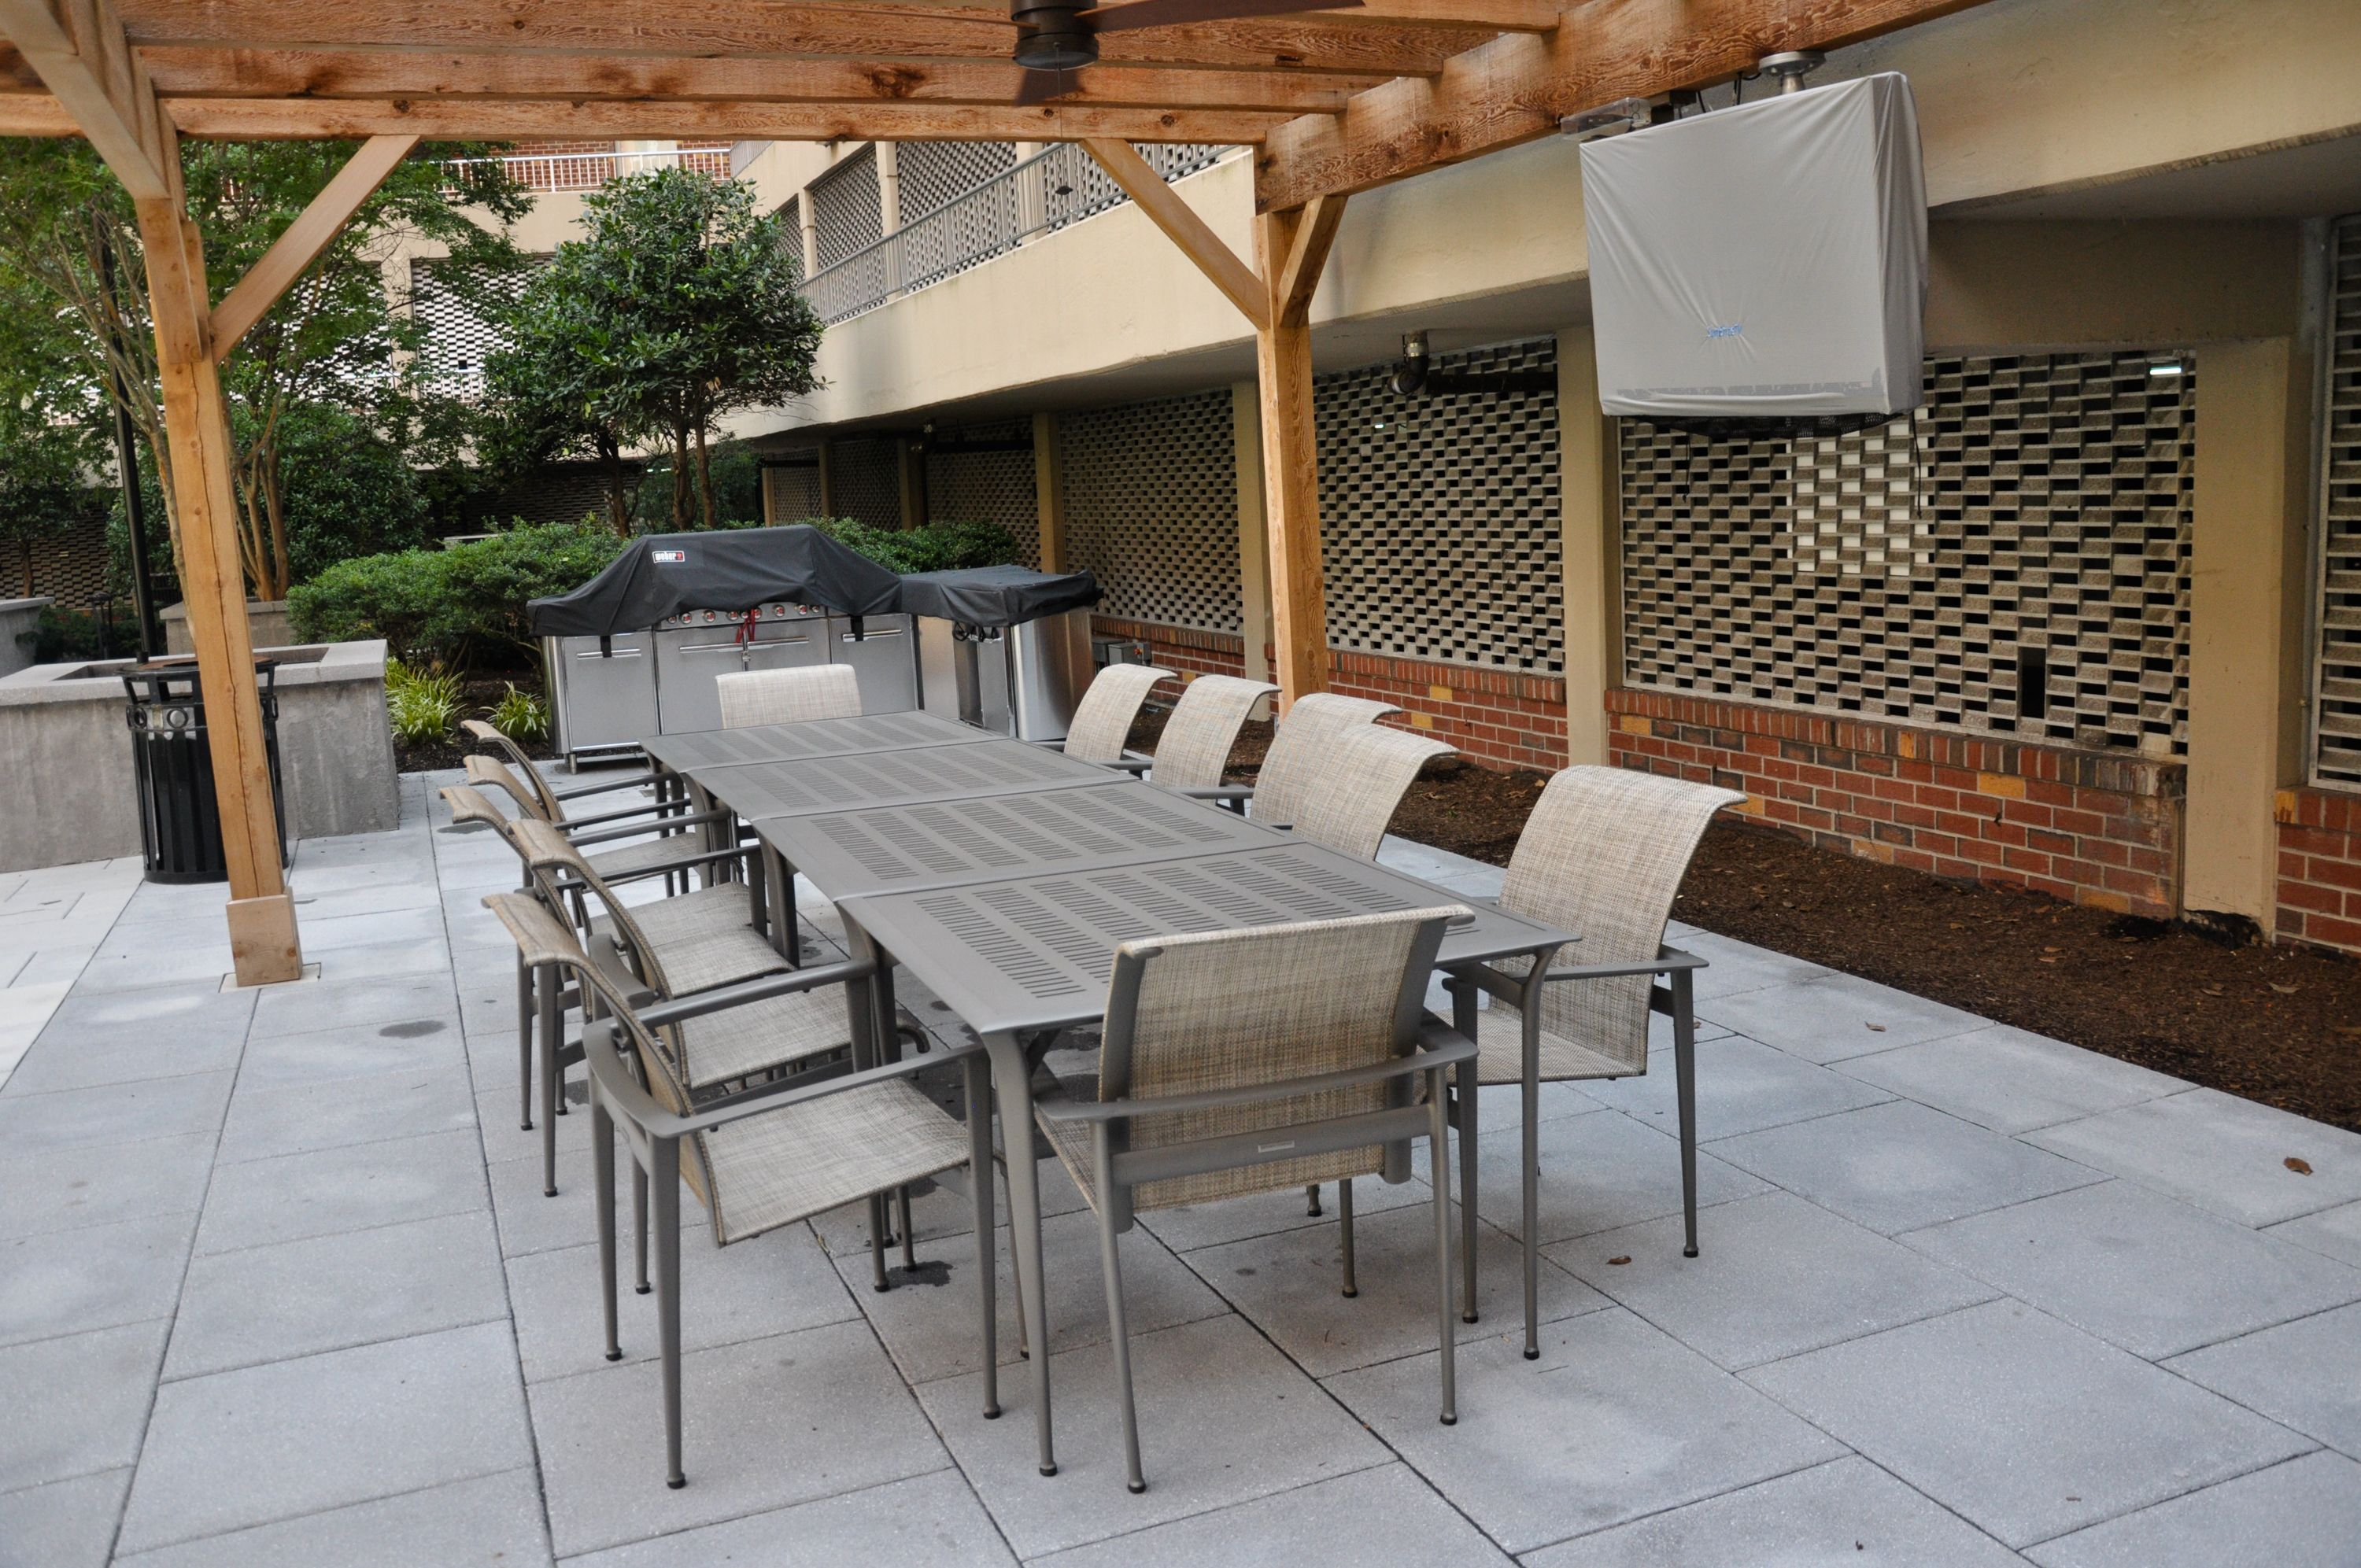 Courtyard At The Point At Silver Spring Apartments Md Ow Ly Zrqyx Outdoordining Lounge Newapartments A Apartment Building Apartment Living Outdoor Dining